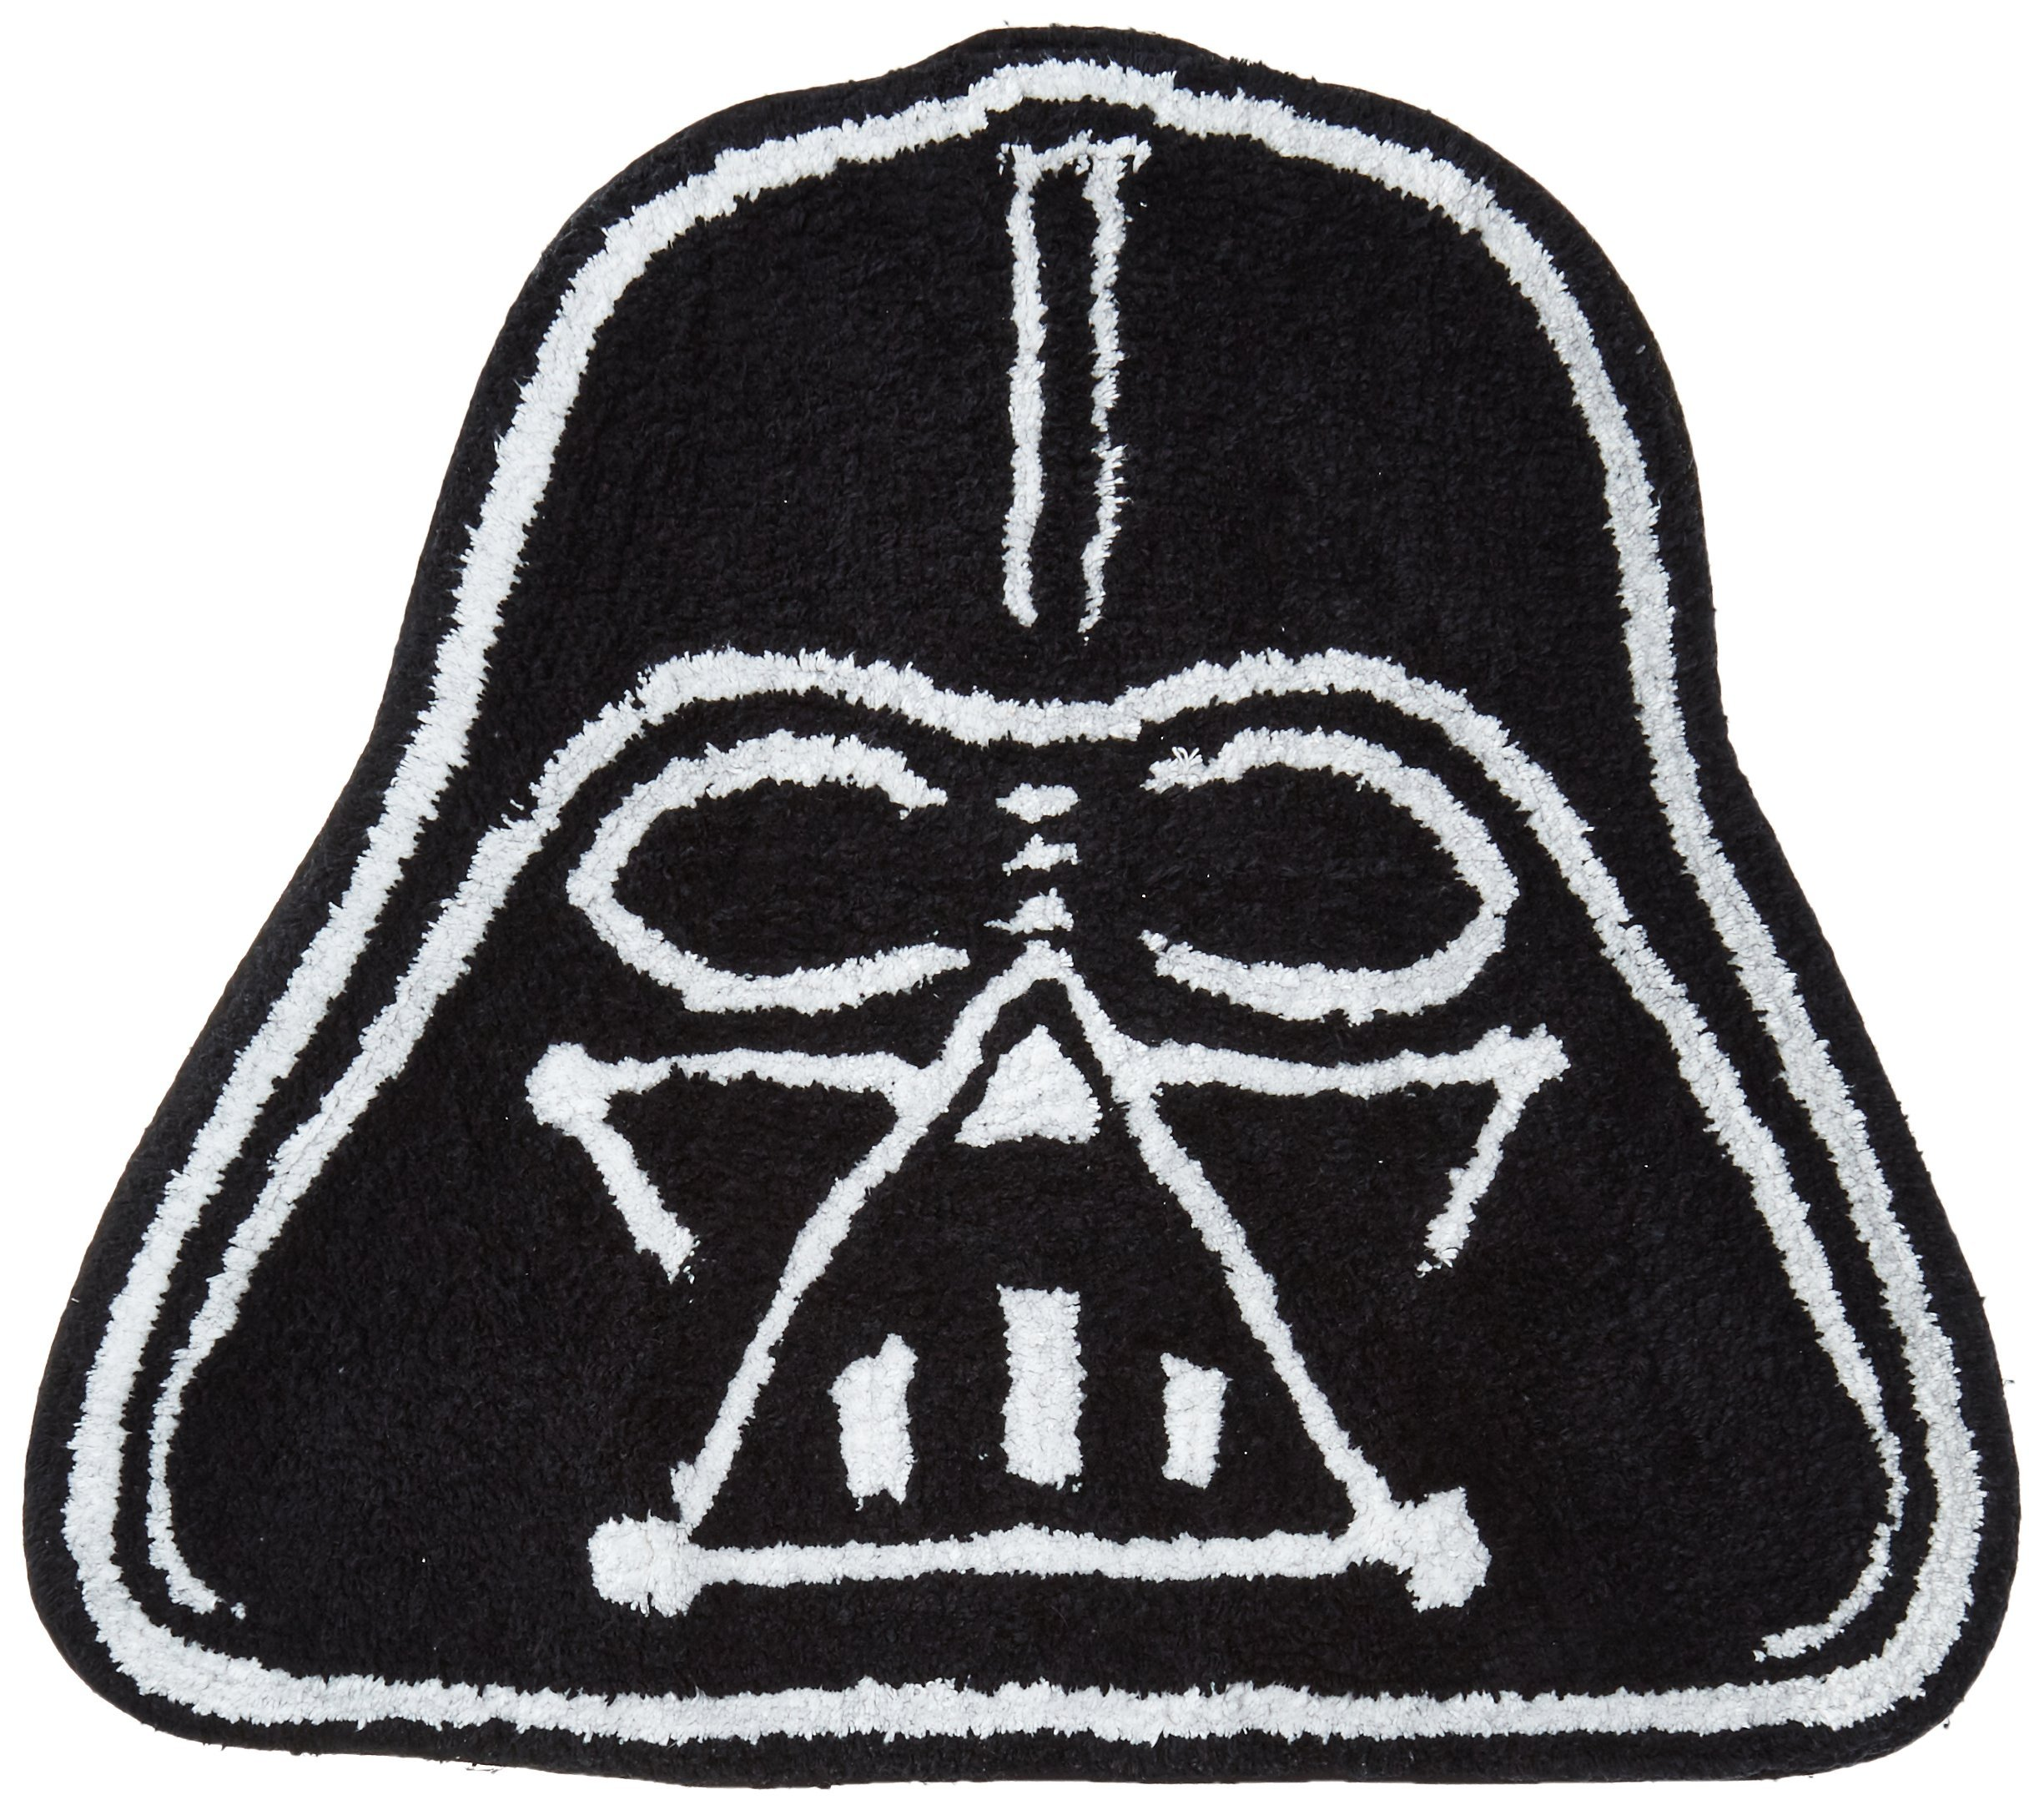 Lucas Film Star Wars Saga Vader Shaped Bath Rug